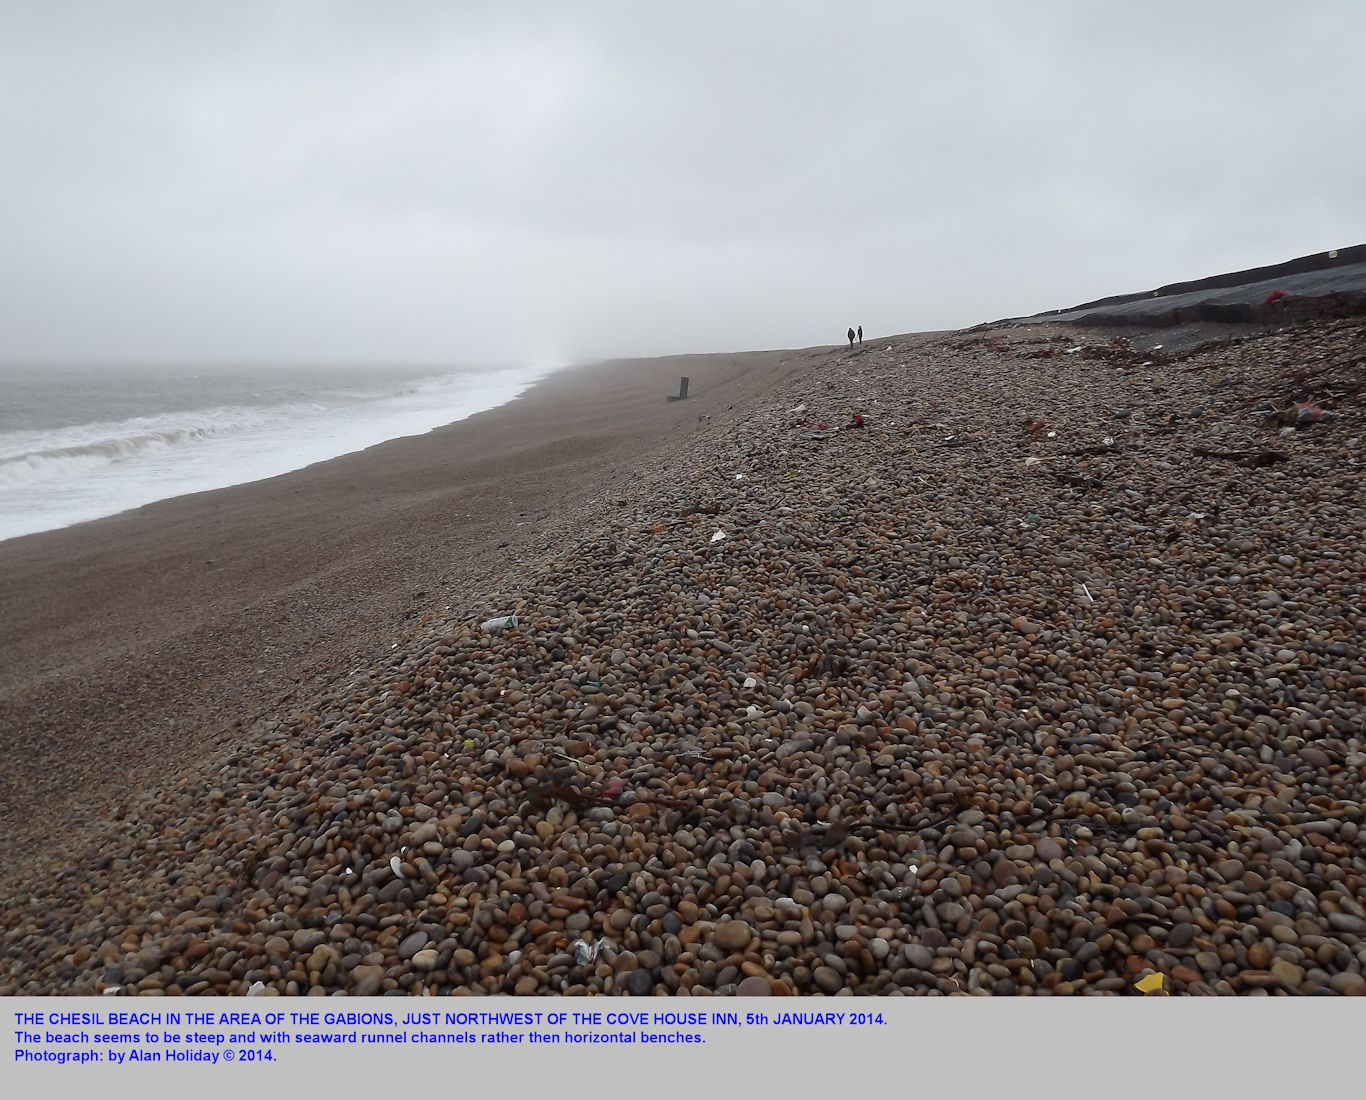 The Chesil Beach just northwest of the Cove House Inn, 5th January 2014, after bad weather but before the main storm of the 6th-7th January, photograph by Alan Holiday